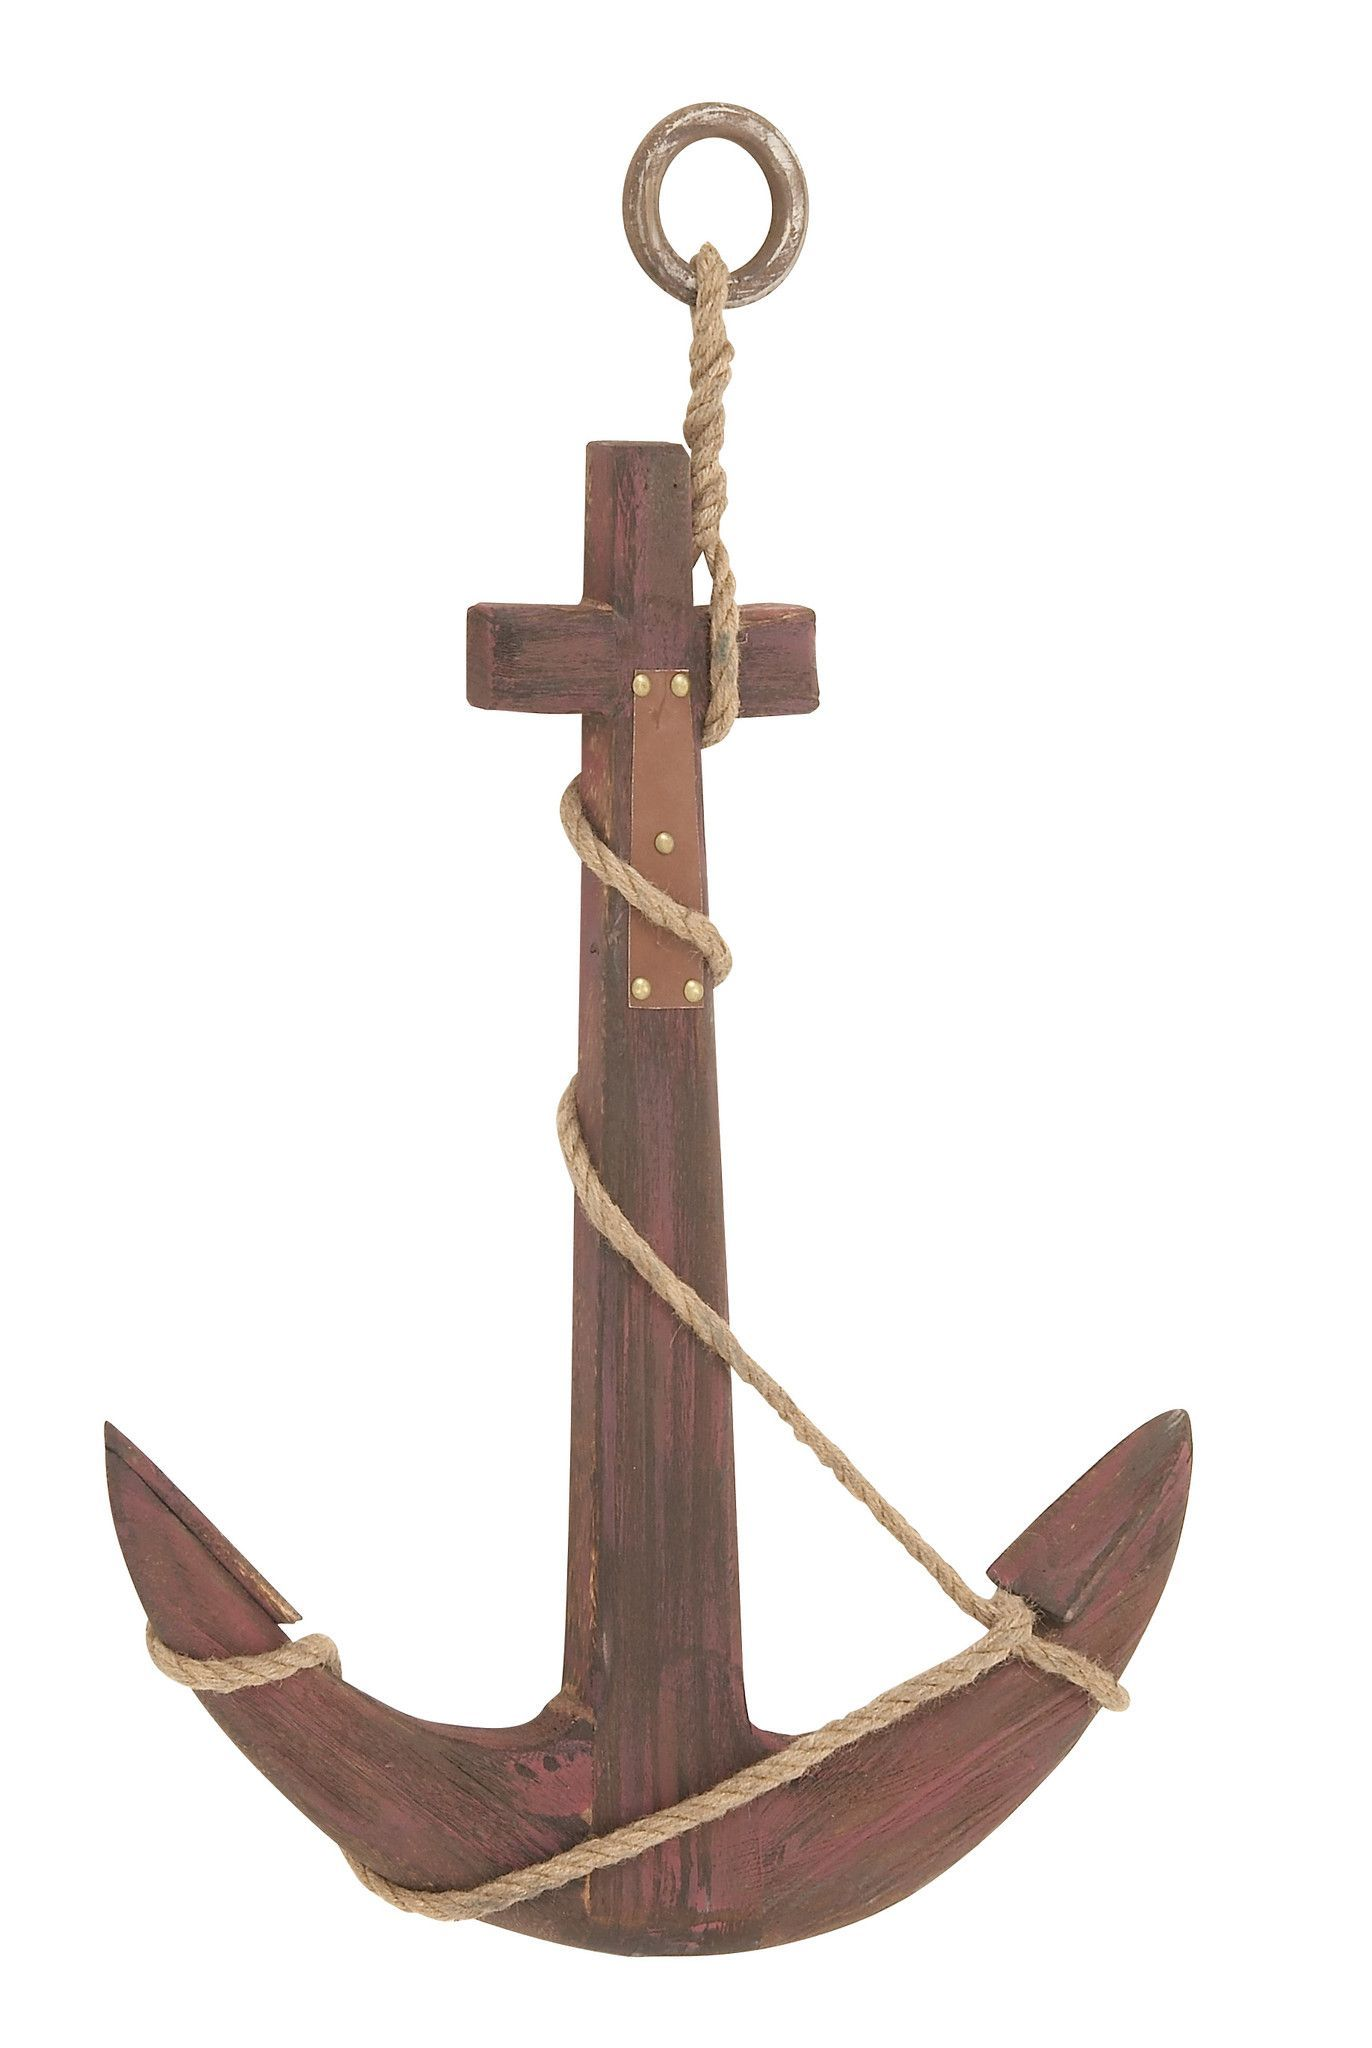 Features: - Wood Rope Anchor Dimensions (inches): L 22 x W 2 x H 29 - Made of quality wood - Durable construction Description: Are you in search of a durable anchor for adorning walls of your abode? C